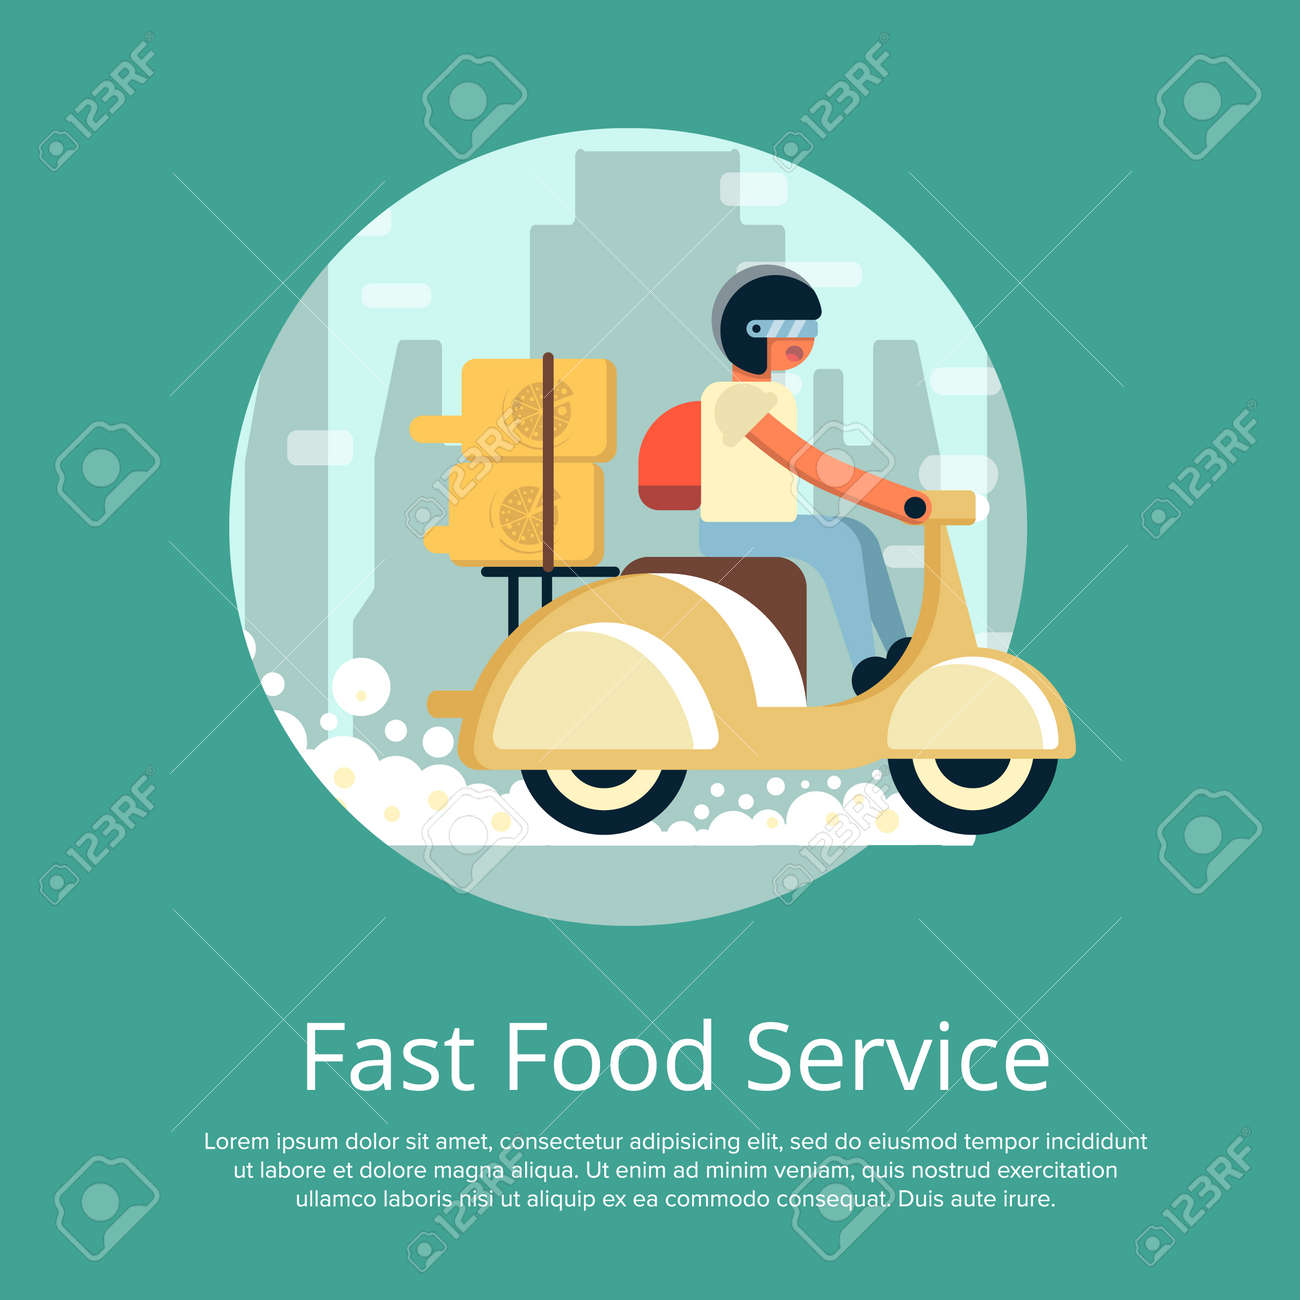 Fast Food Delivery Service Poster With Courier Man Ride Scooter